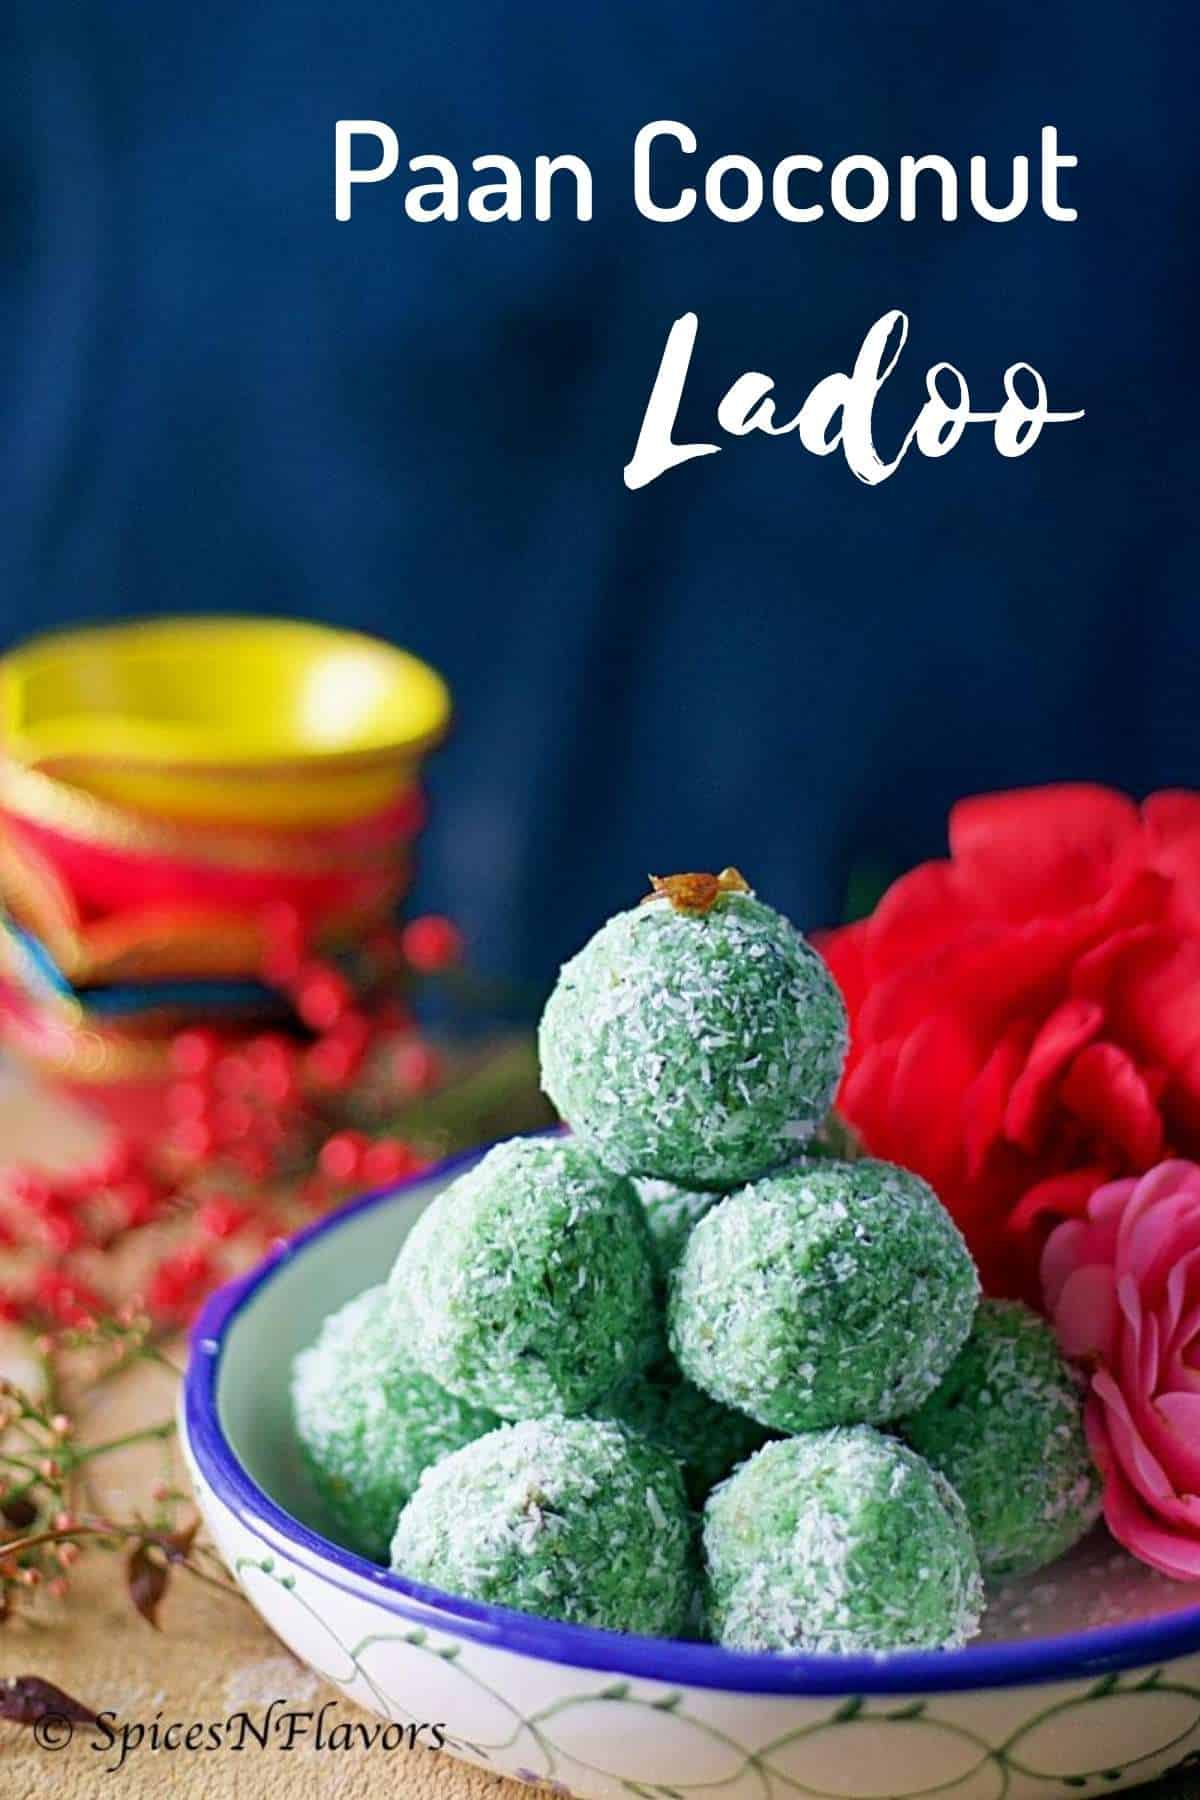 ladoos stacked on each other sitting on a blue rim bowl